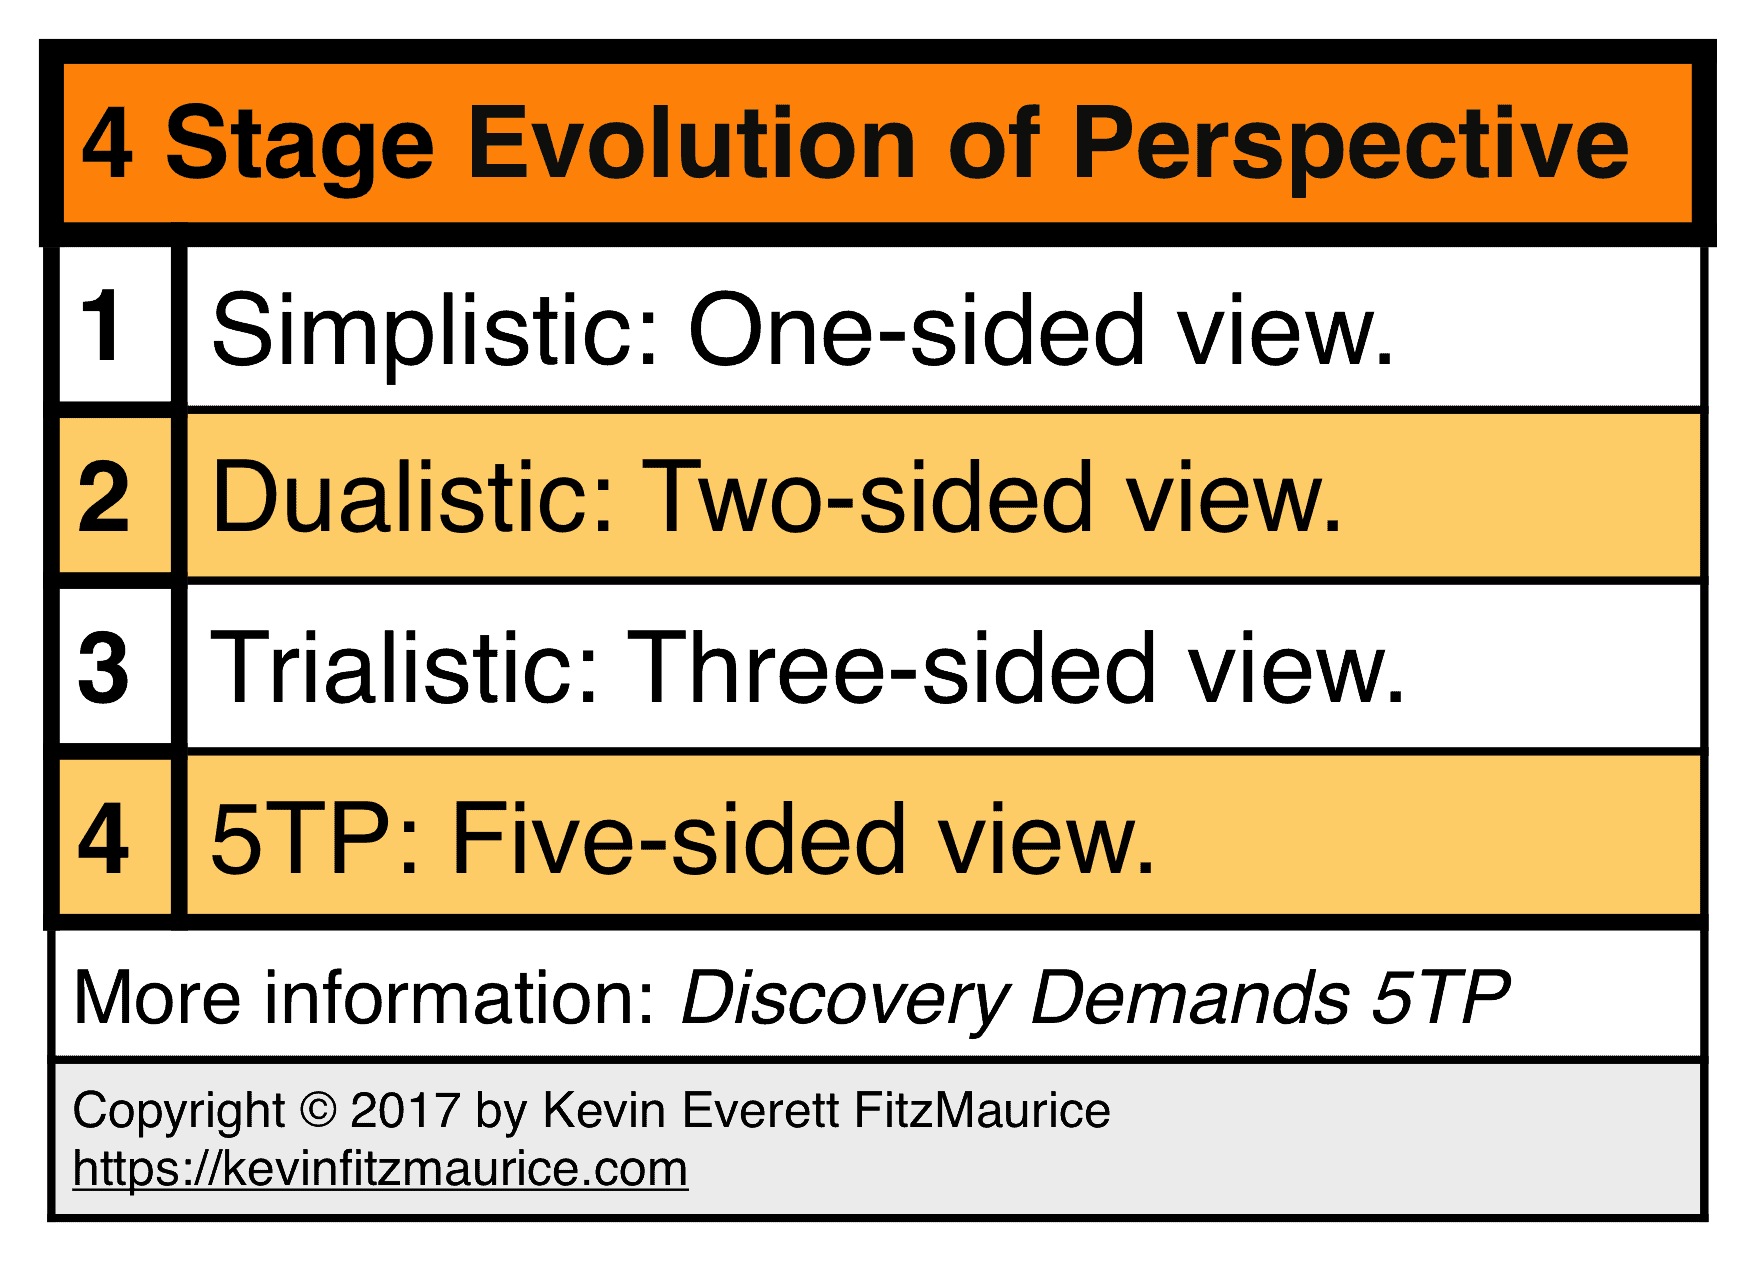 4 Stage Evolution of Perspective